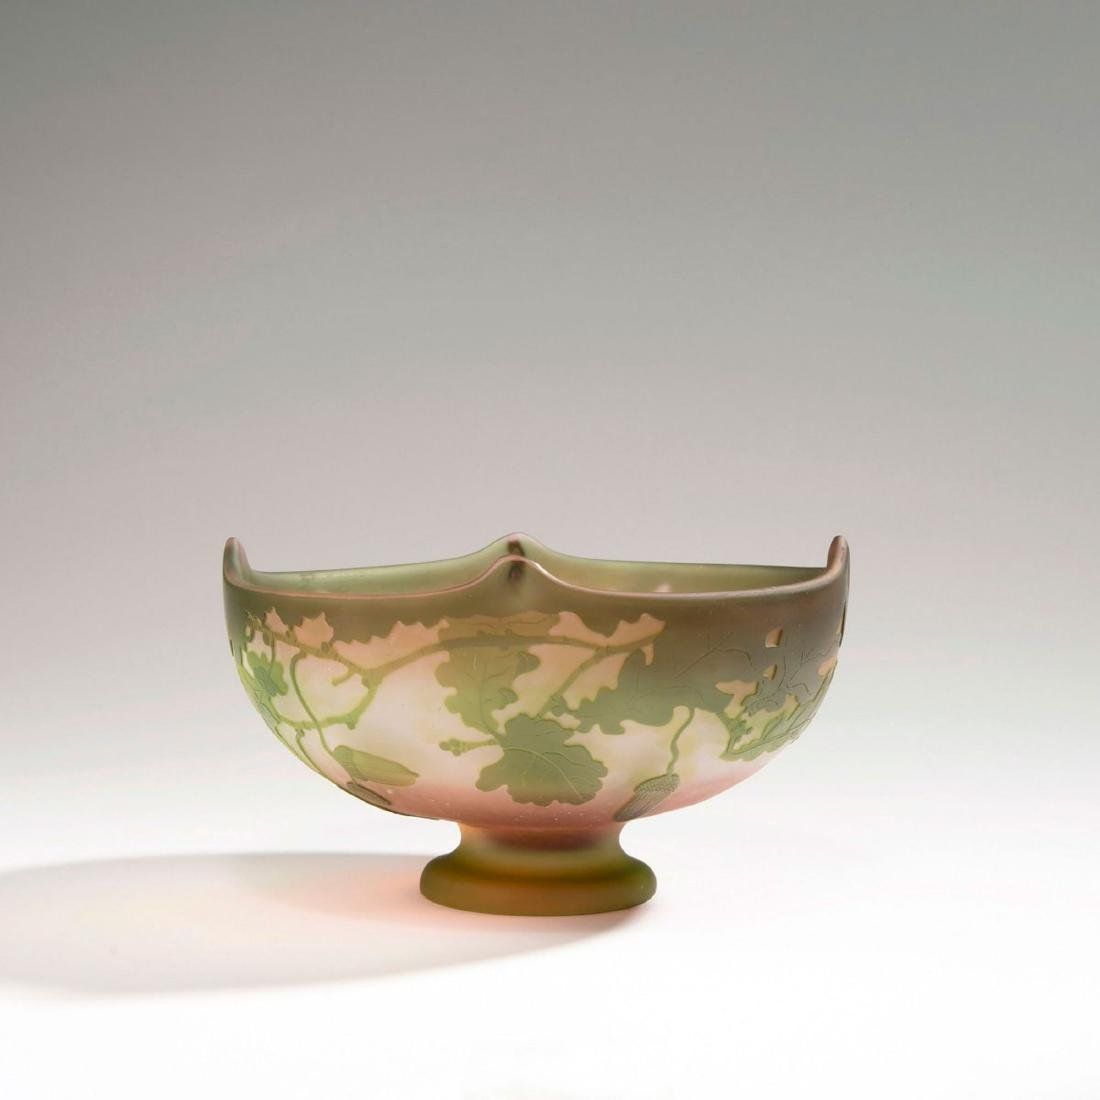 Footed 'Chene' bowl, 1902-04